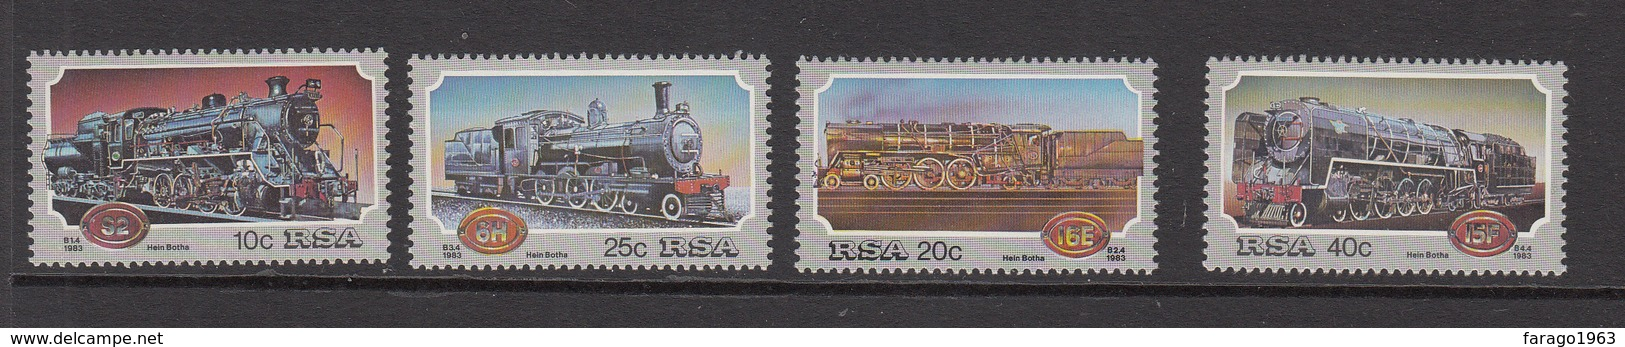 1983 South Africa Trains  Complete Set Of 4 MNH - Zuid-Afrika (1961-...)